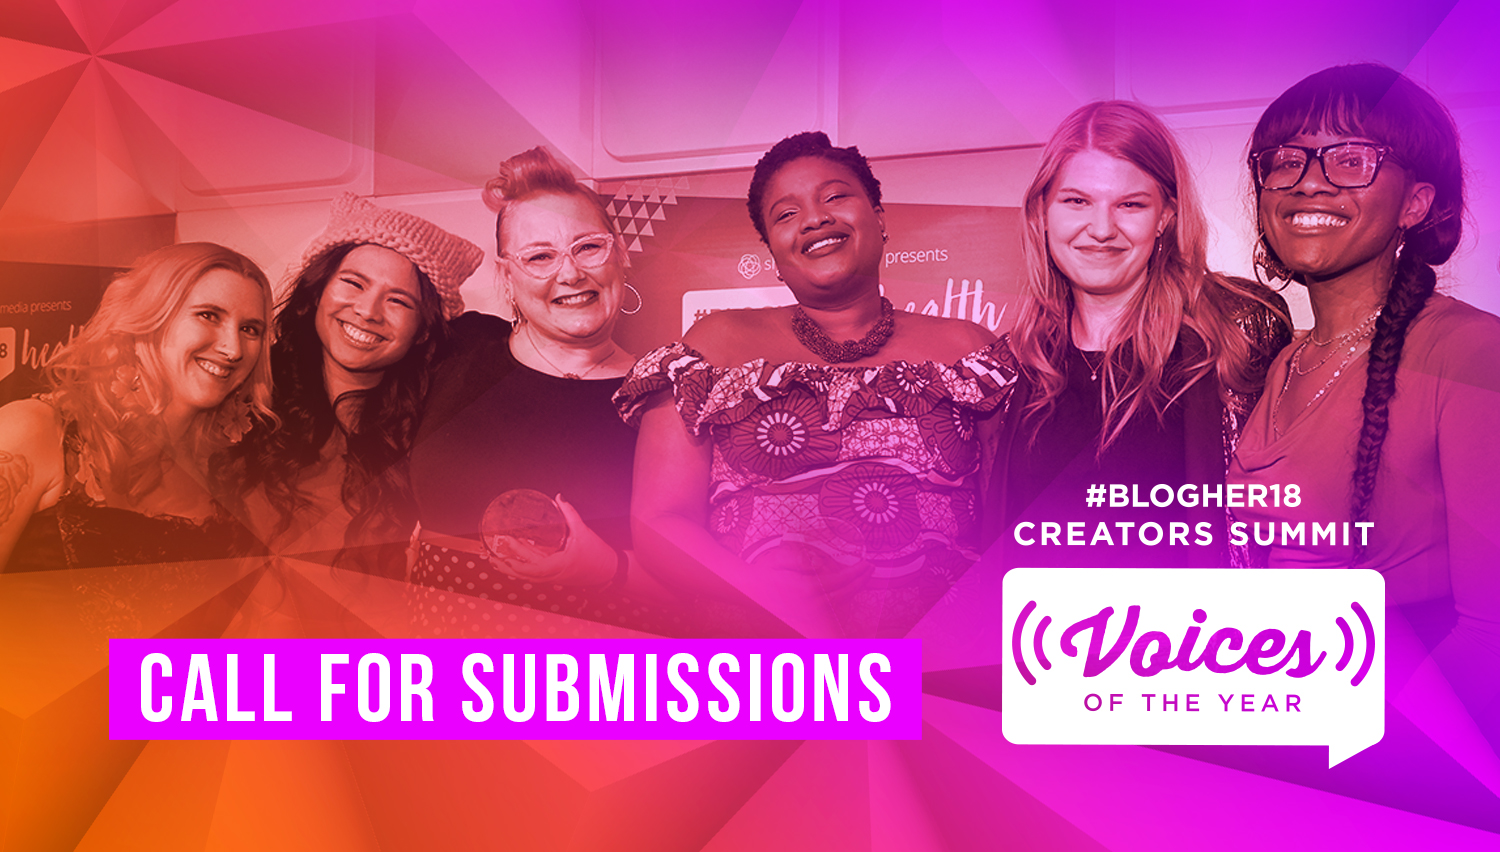 #VOTY is back - Now in its 11th year, Voices of the Year (#VOTY) comes to #BlogHer18 Creators Summit, continuing the tradition of celebrating women's voices.